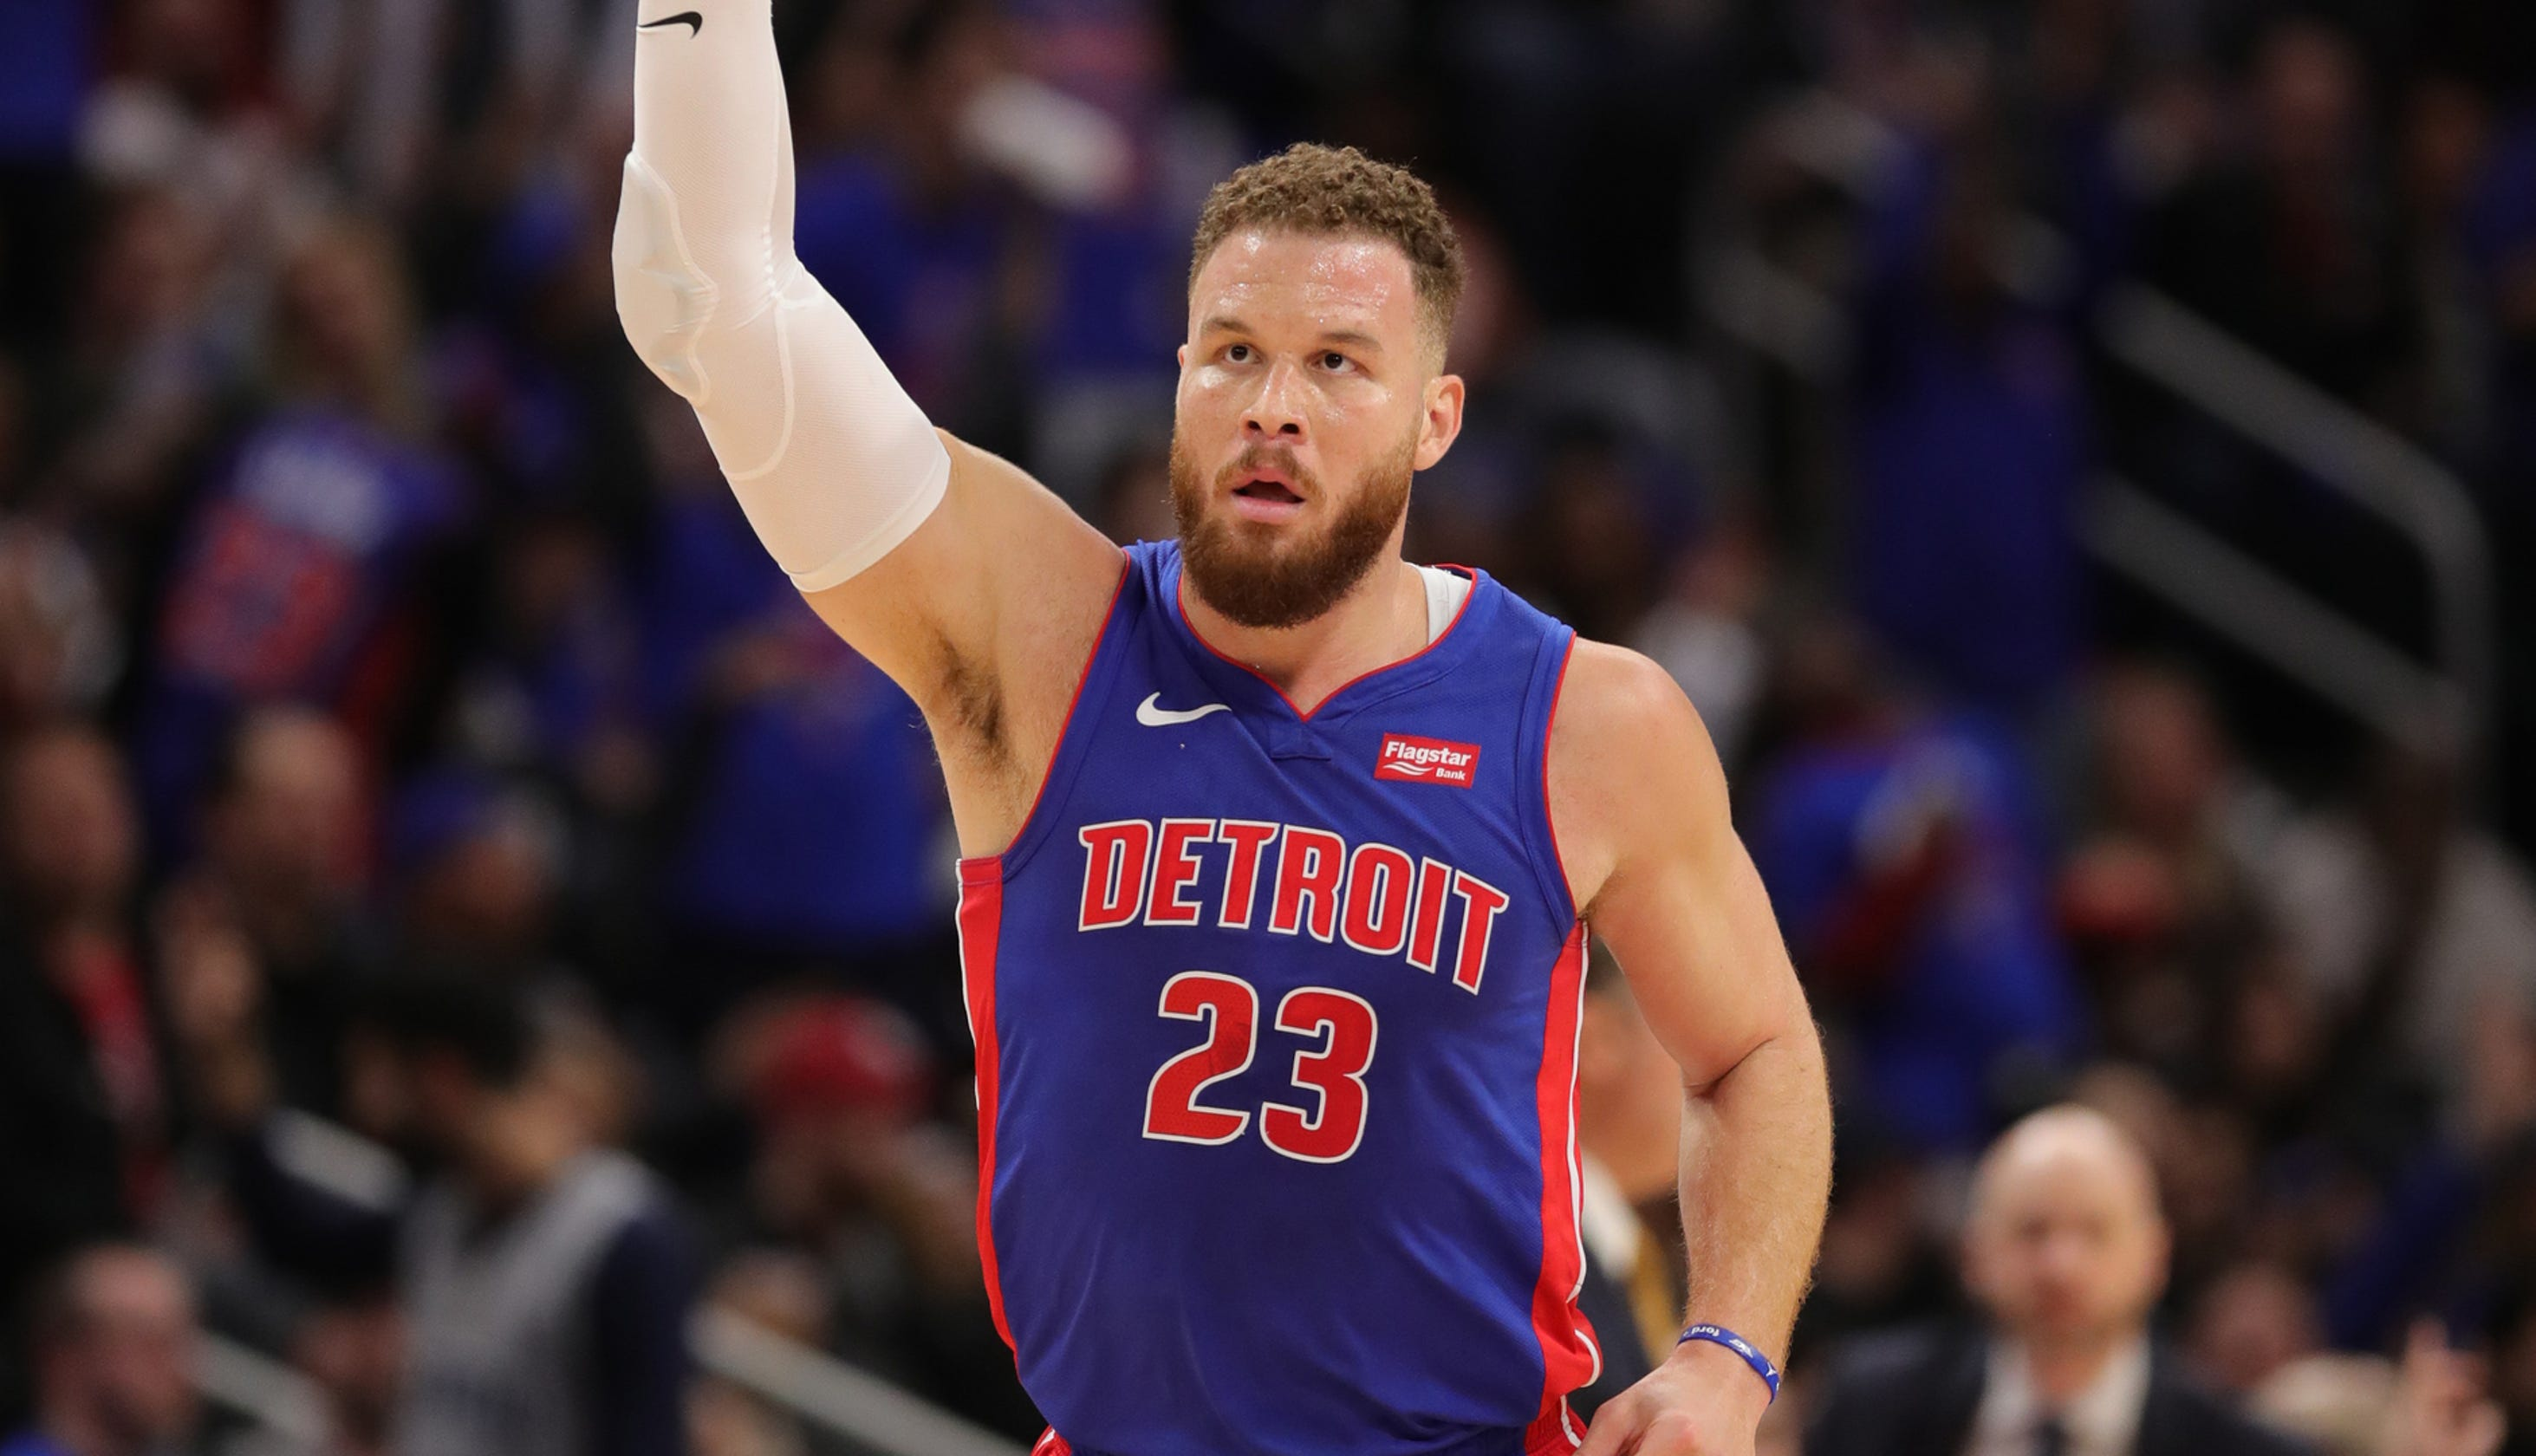 b53e02cdd7a Detroit Pistons  Blake Griffin gives endorsement on franchise direction